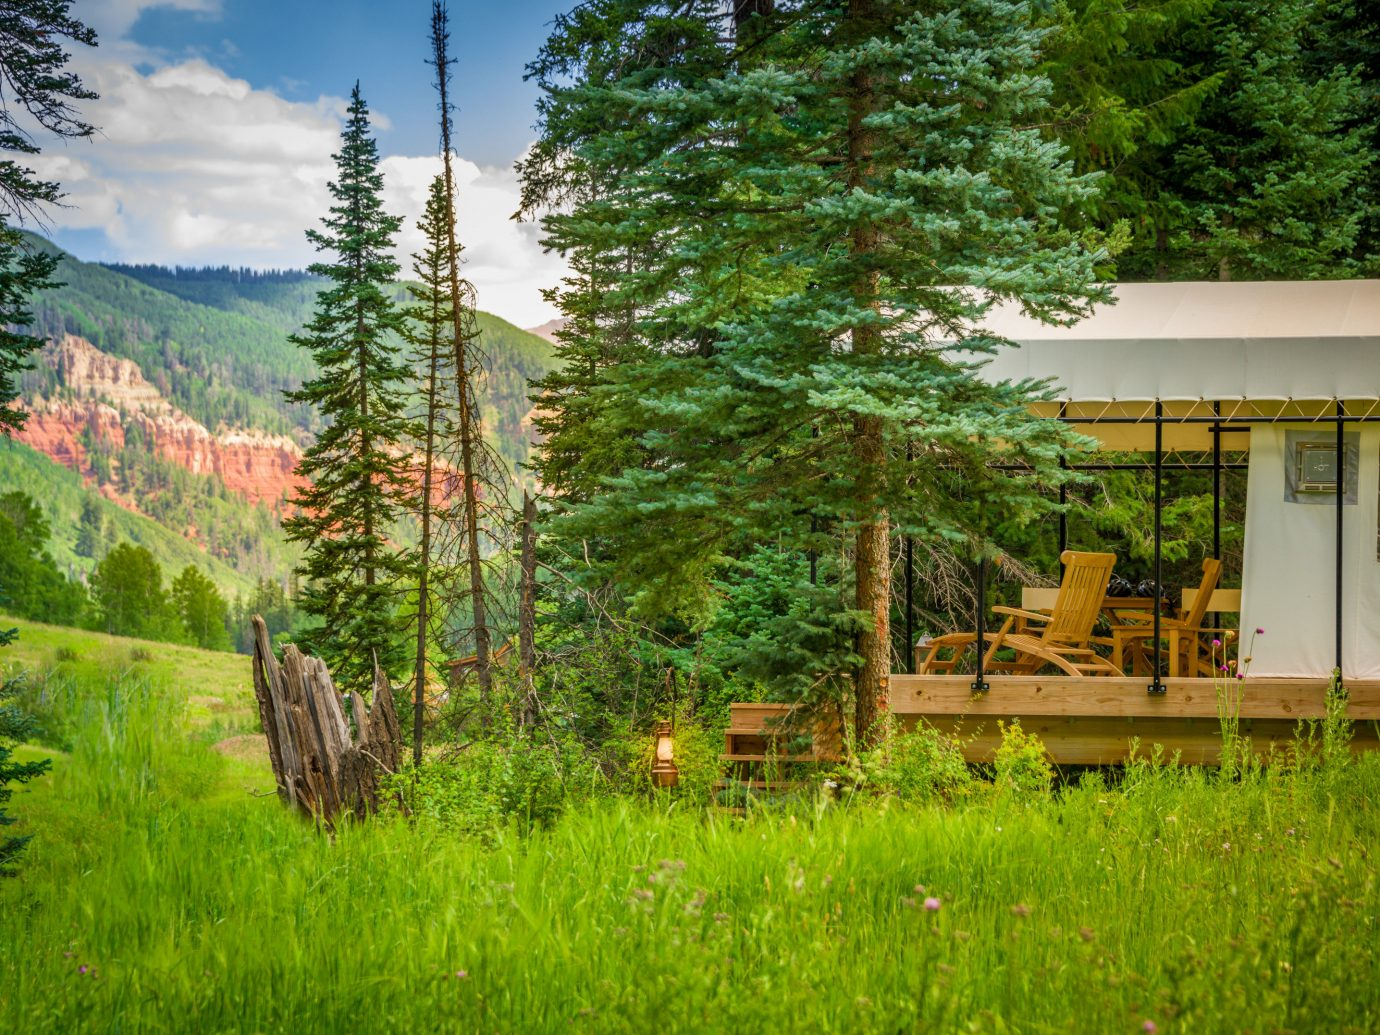 Glamping Outdoors + Adventure Trip Ideas Weekend Getaways tree grass outdoor wilderness ecosystem green field botany plant woody plant meadow woodland rural area landscape flower estate Garden autumn biome lush house Forest wooded